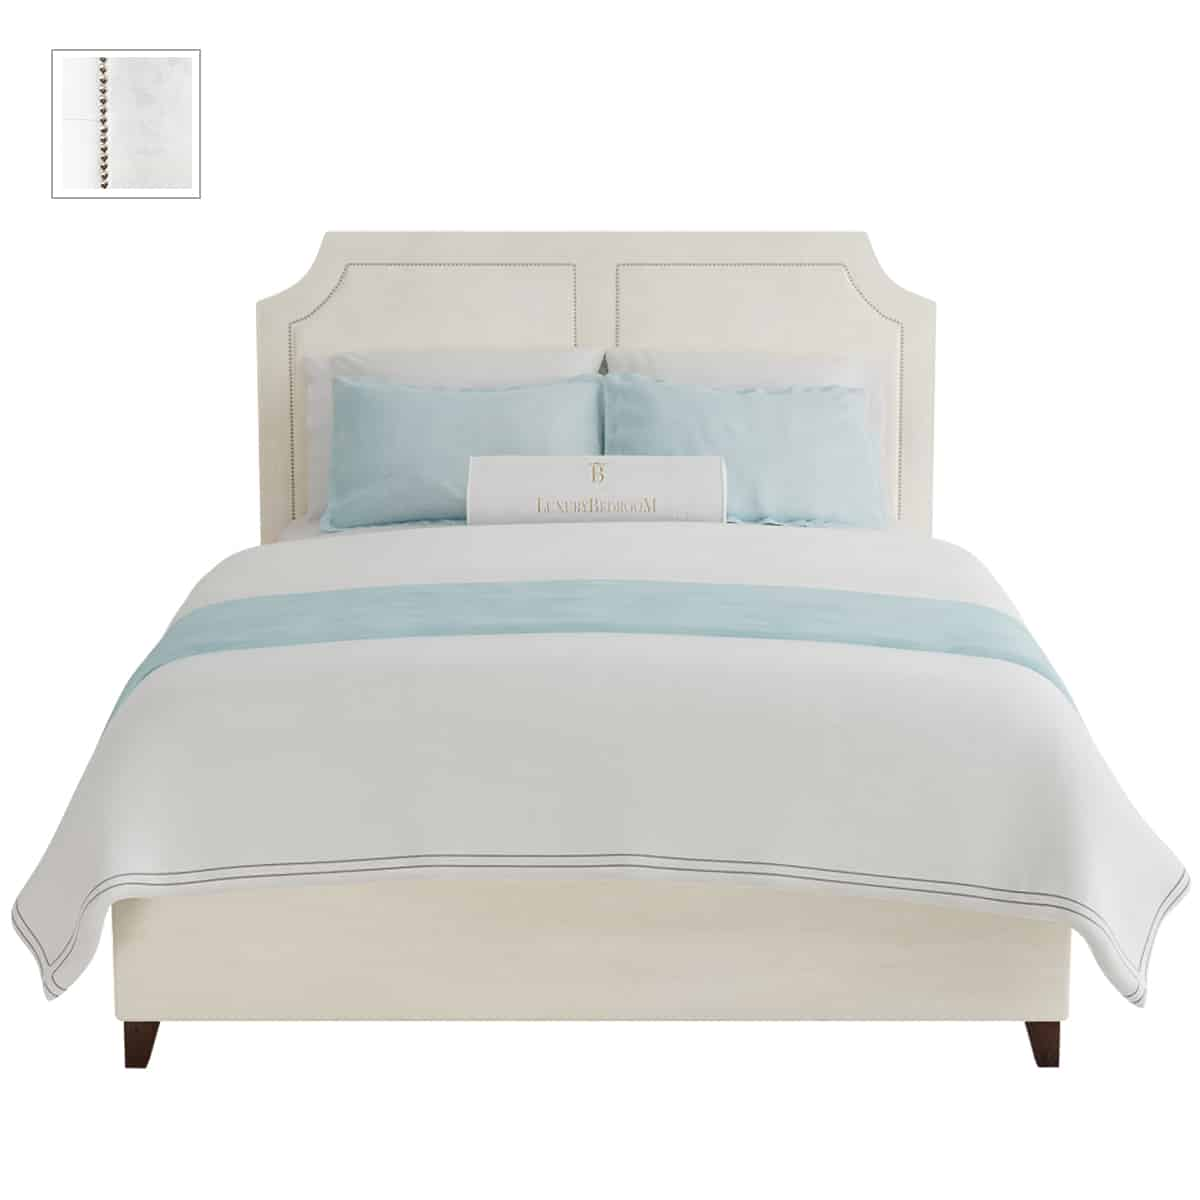 double bed wymiary